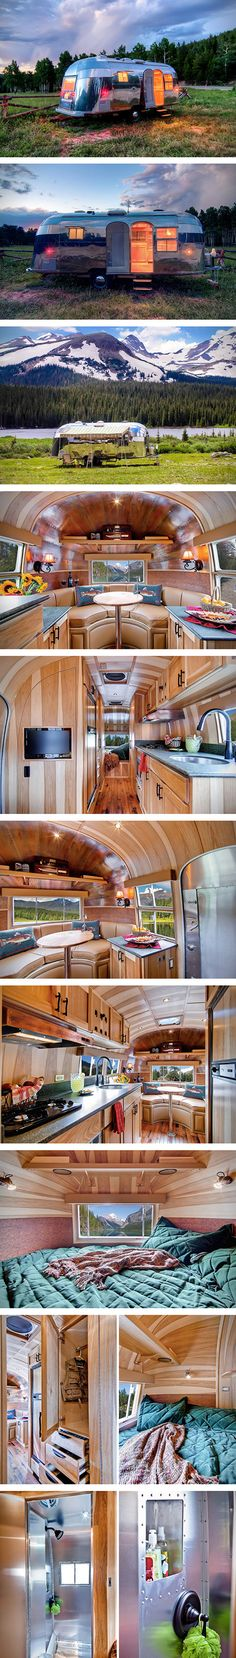 The average person might scoff at the thought of going cross-country in a trailer that was built in 1954, but that all changes when you see this immaculately restored Airstream Flying Cloud. The crew at Timeless Travel Trailers has worked their magic on this onetime hunting and fishing lodge, and you don't have to be a Baby Boomer to find the whole thing pretty glorious.